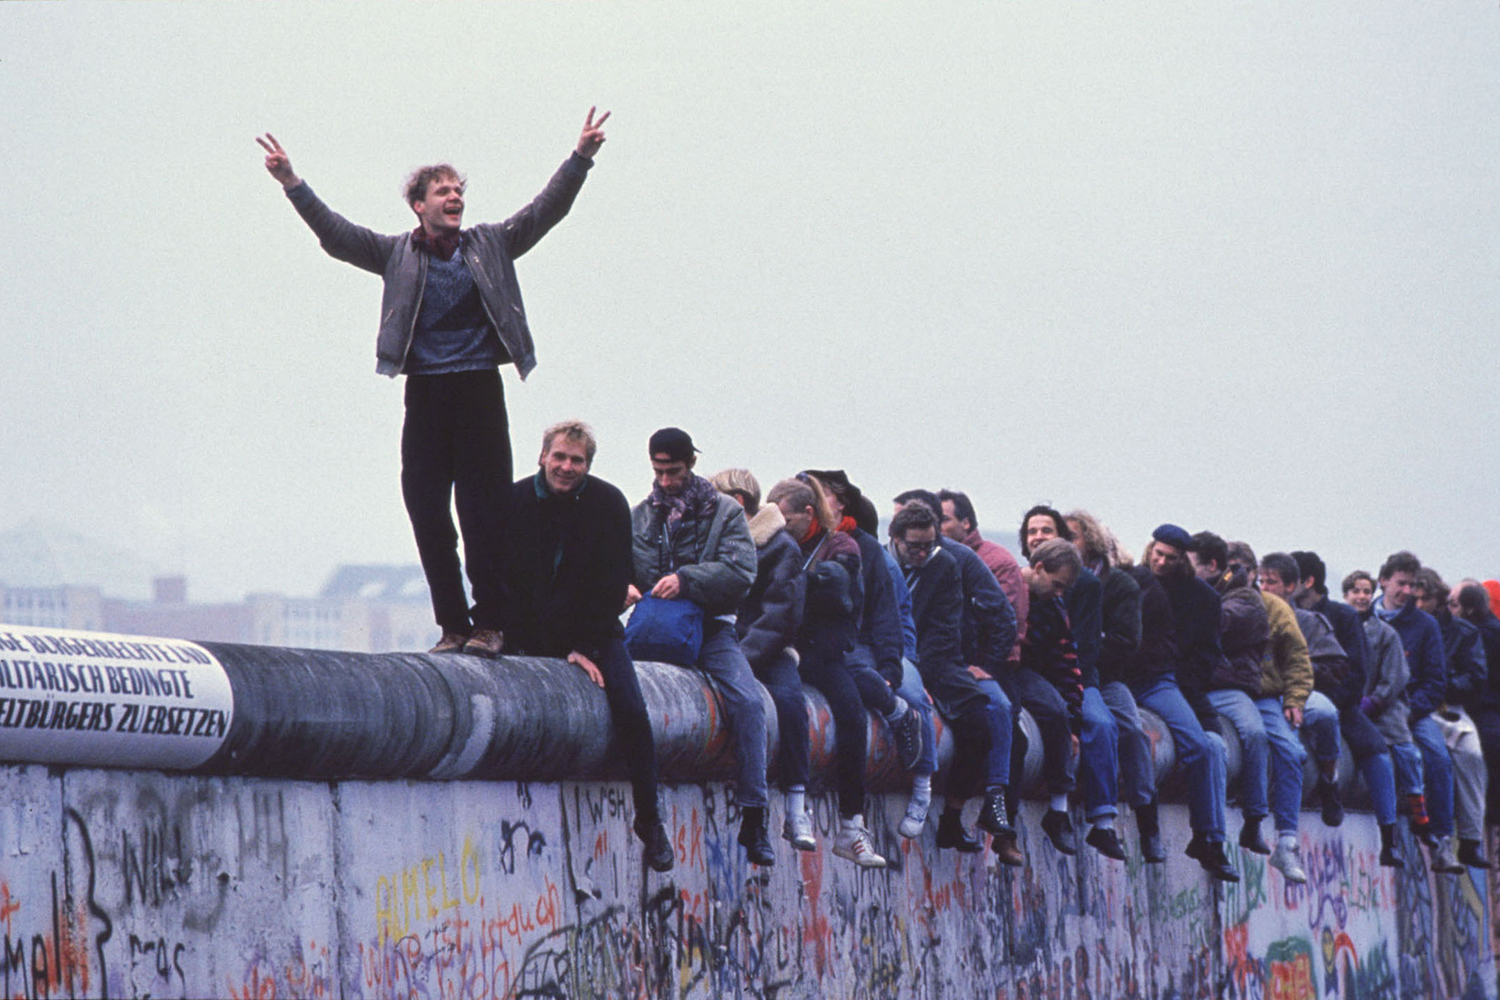 West Germans celebrate the unification of Berlin atop the wall on Nov. 12, 1989. Stephen Jaffe/Getty Images